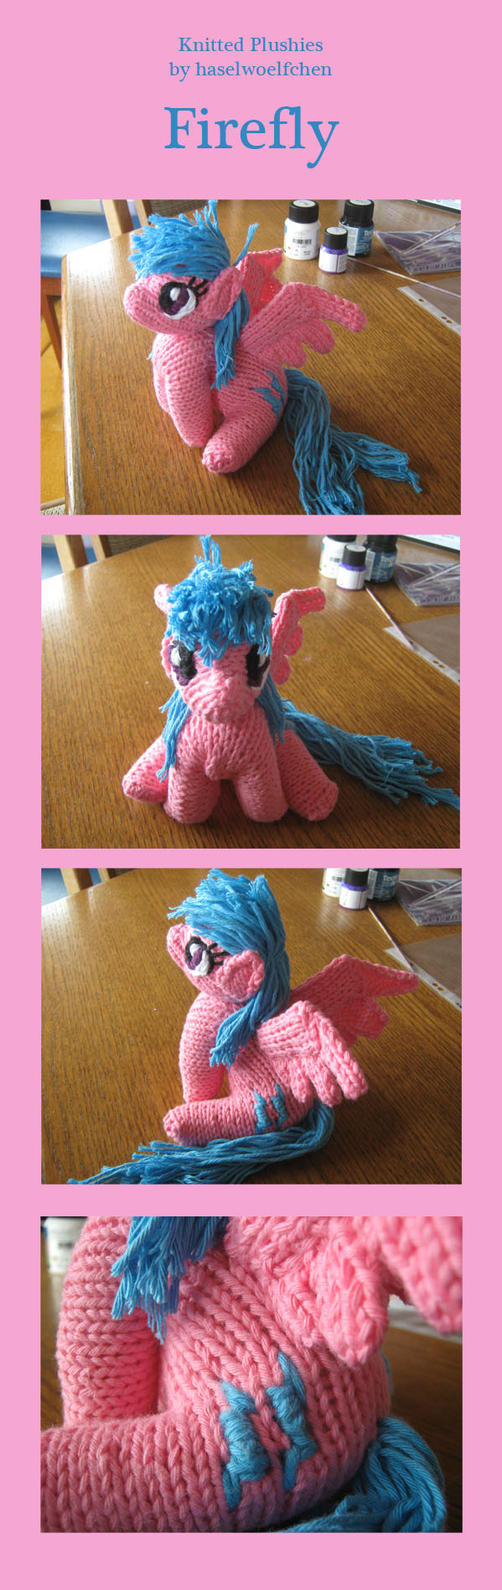 Knitted Plushies - Firefly by haselwoelfchen